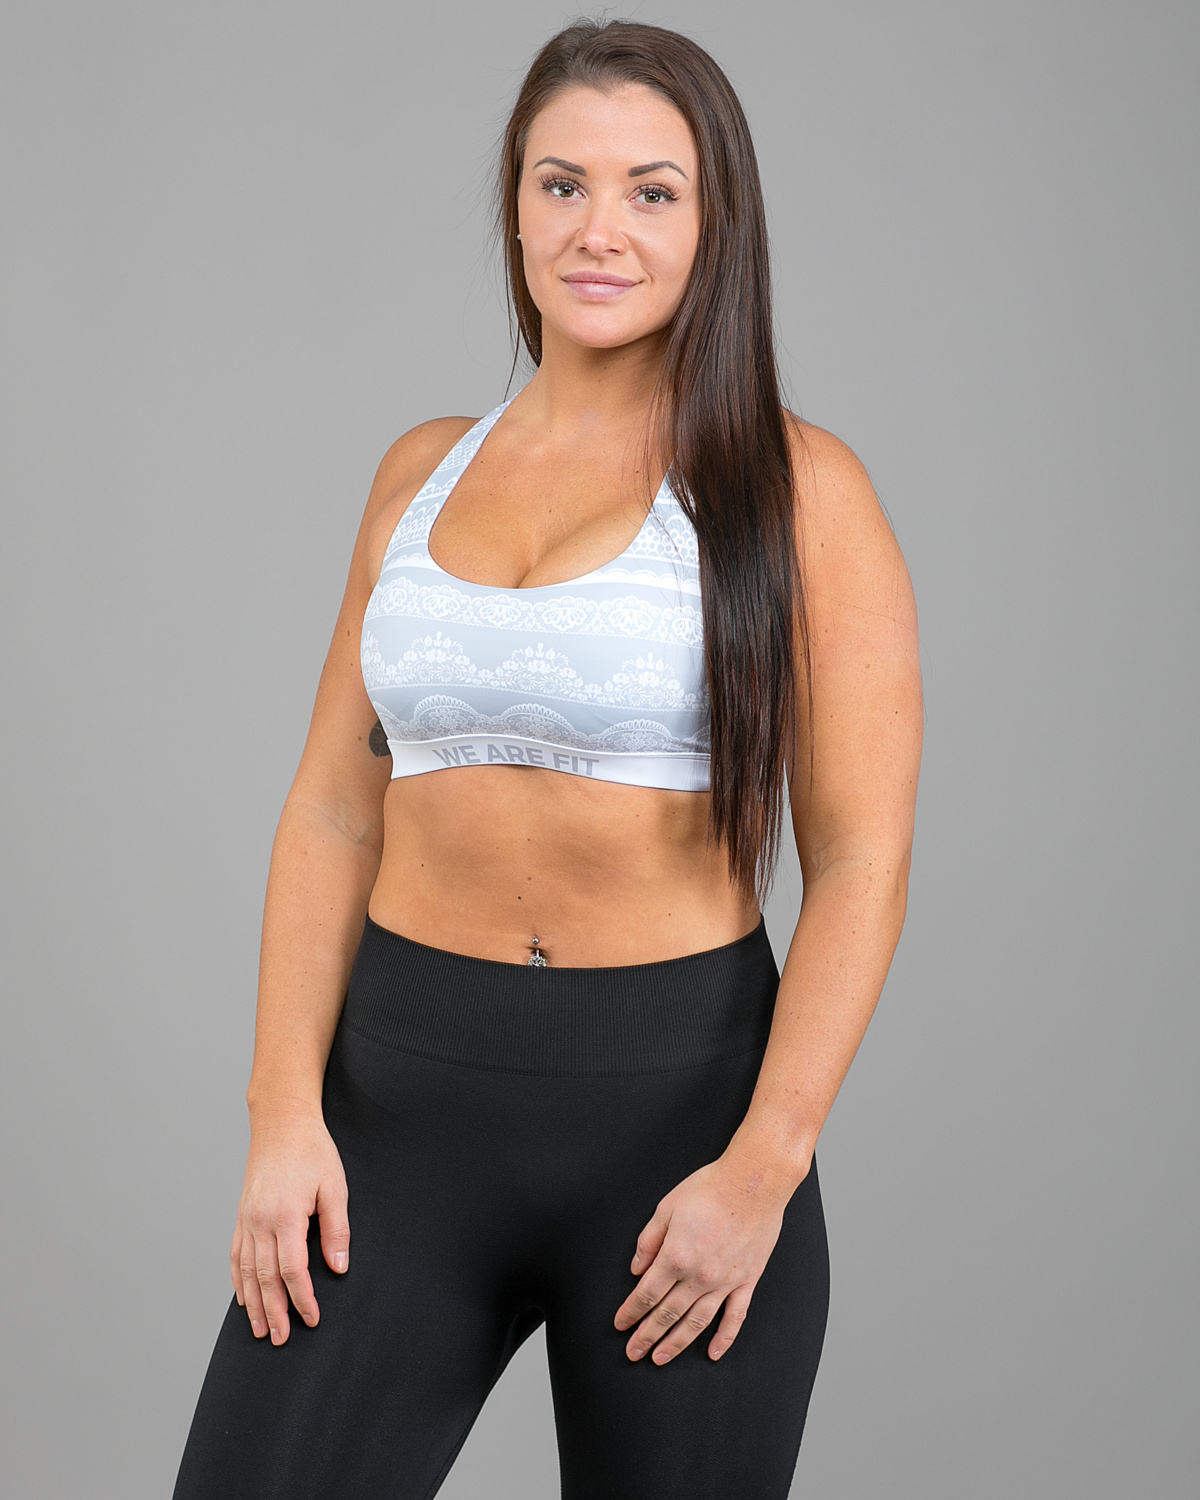 We-Are-Fit-Lace-Up-2.0-Compression-Top